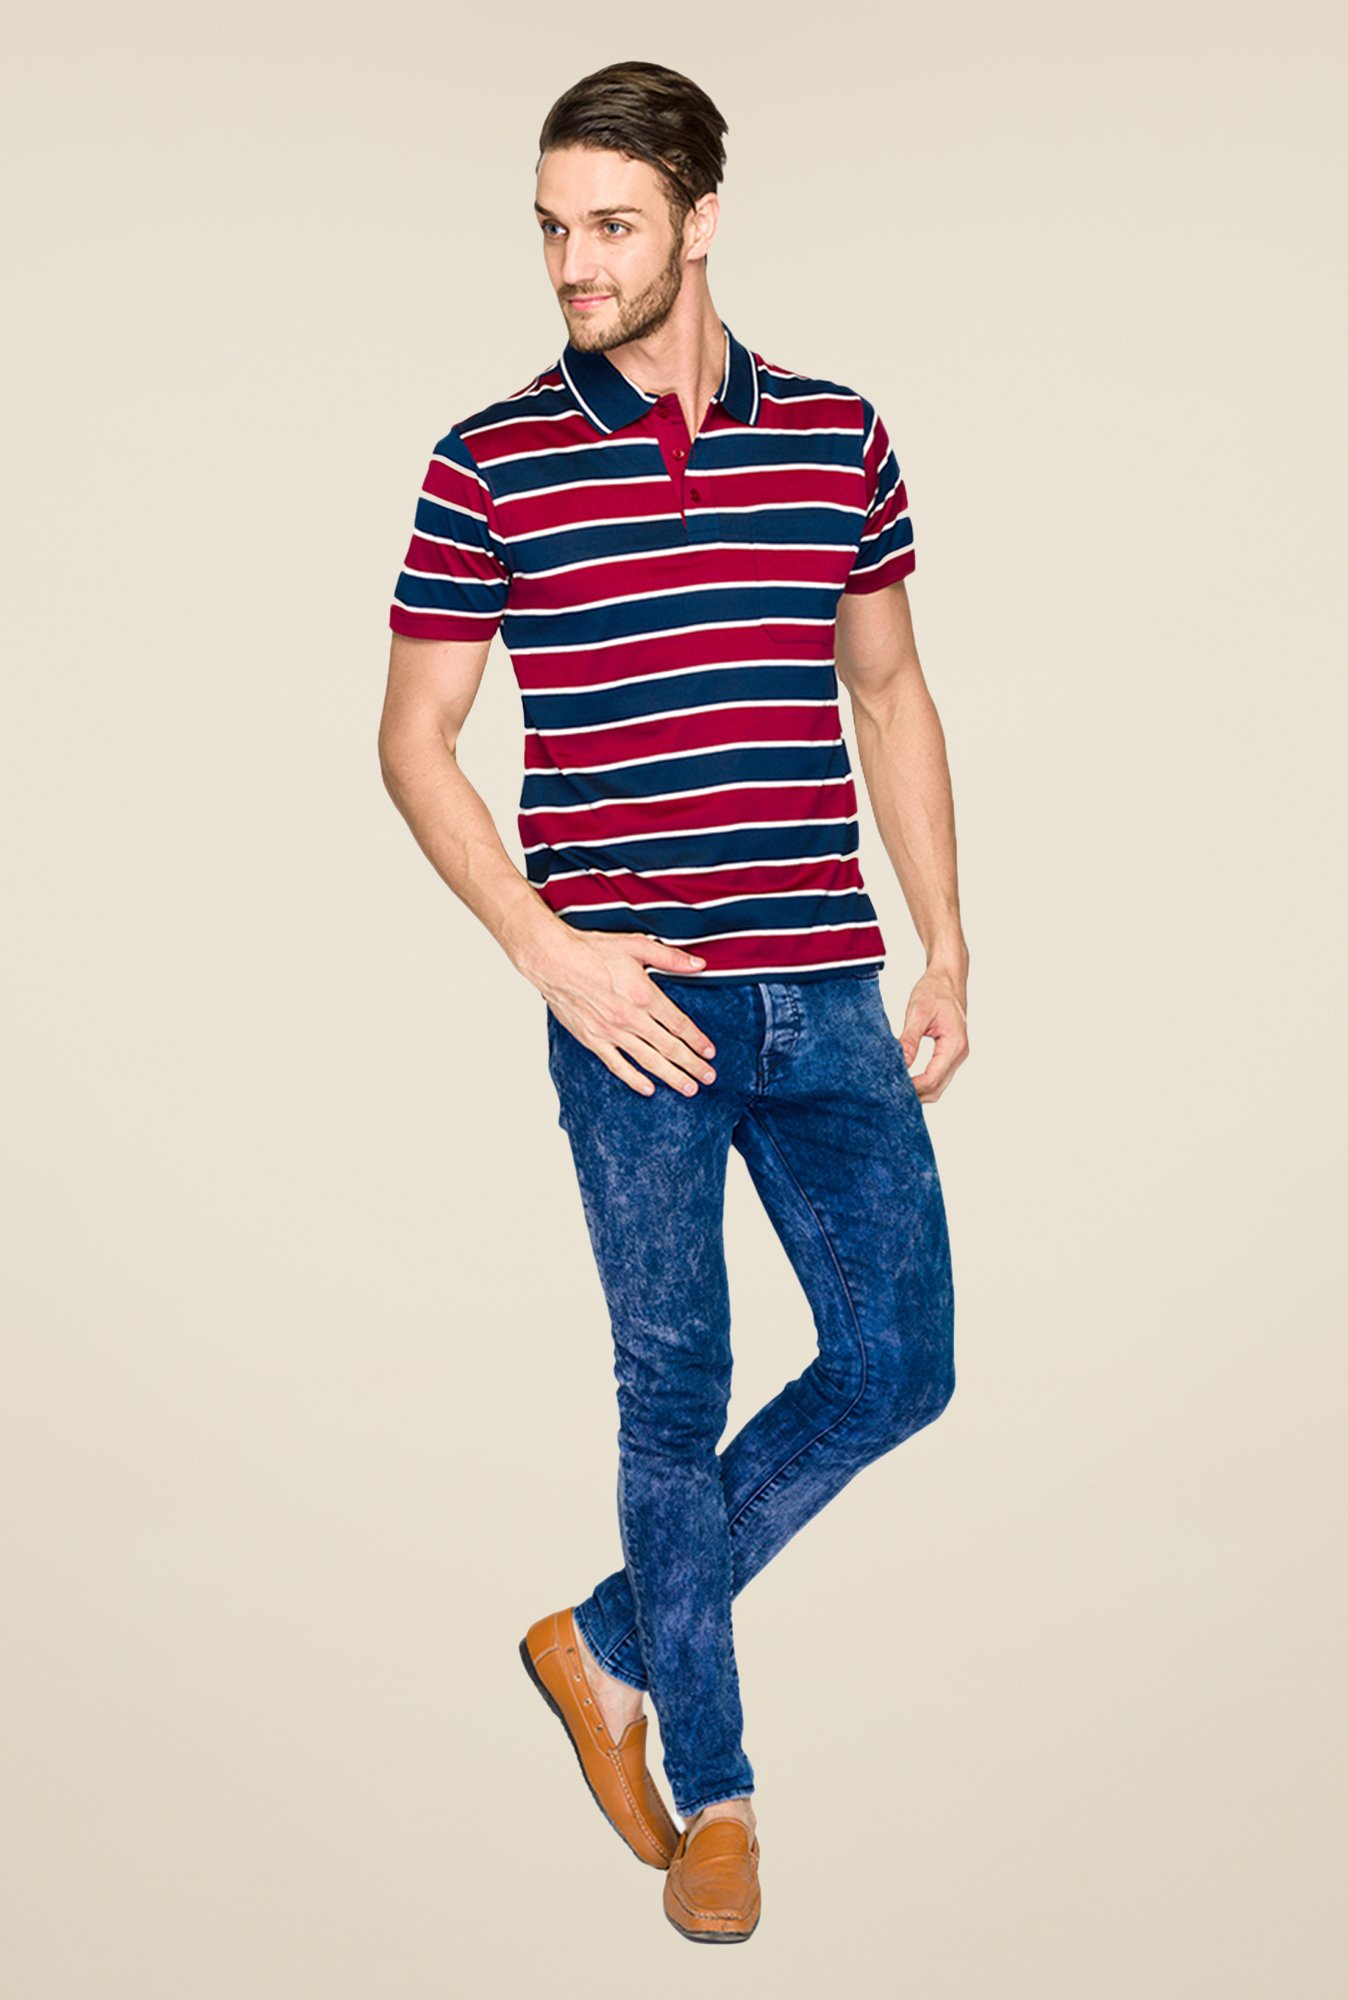 Raymond Maroon & Navy Striped Polo T Shirt